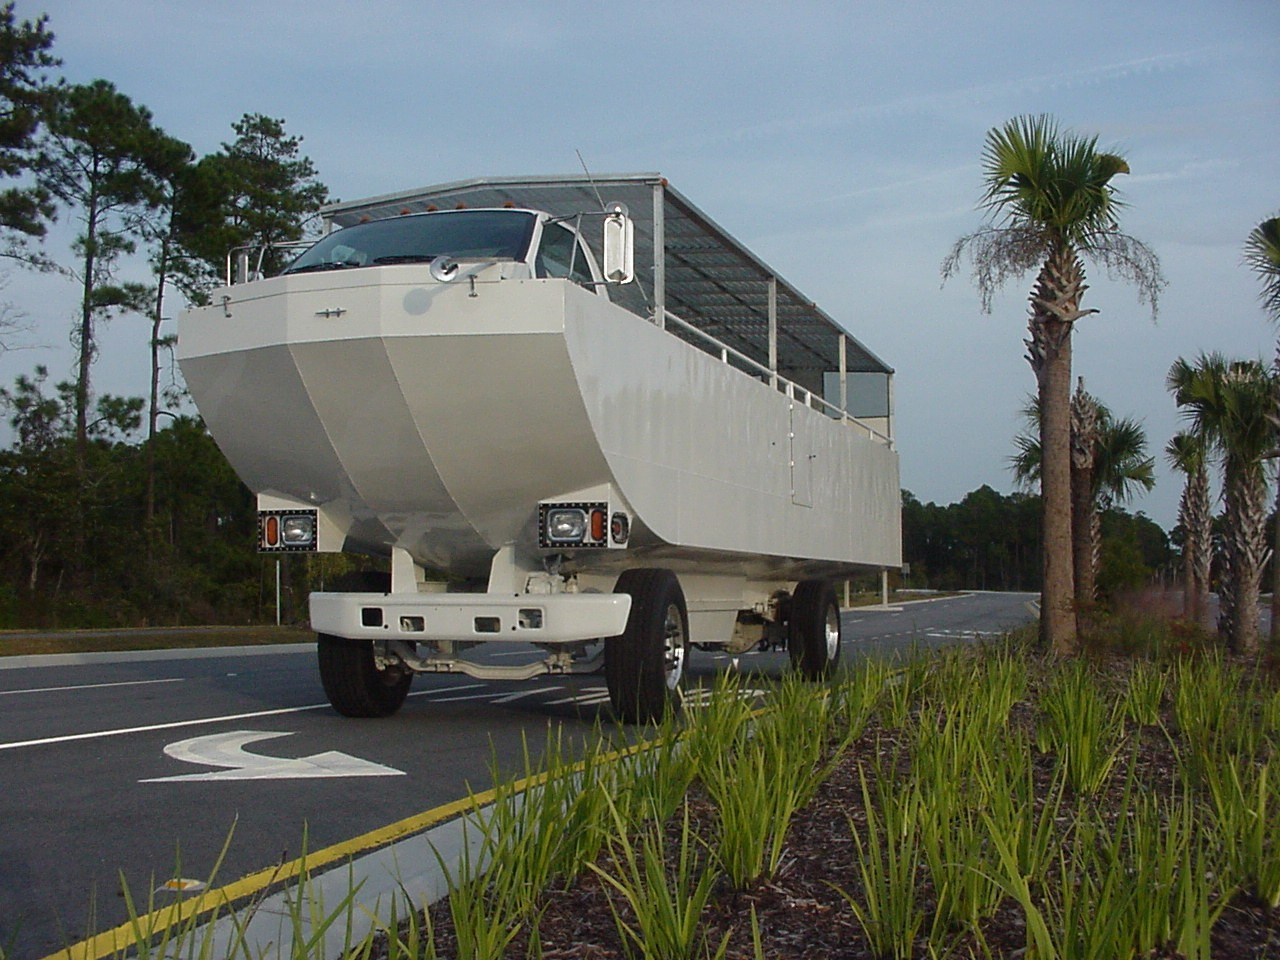 Terrawind Looks Like An Amphibious School Bus Autoevolution